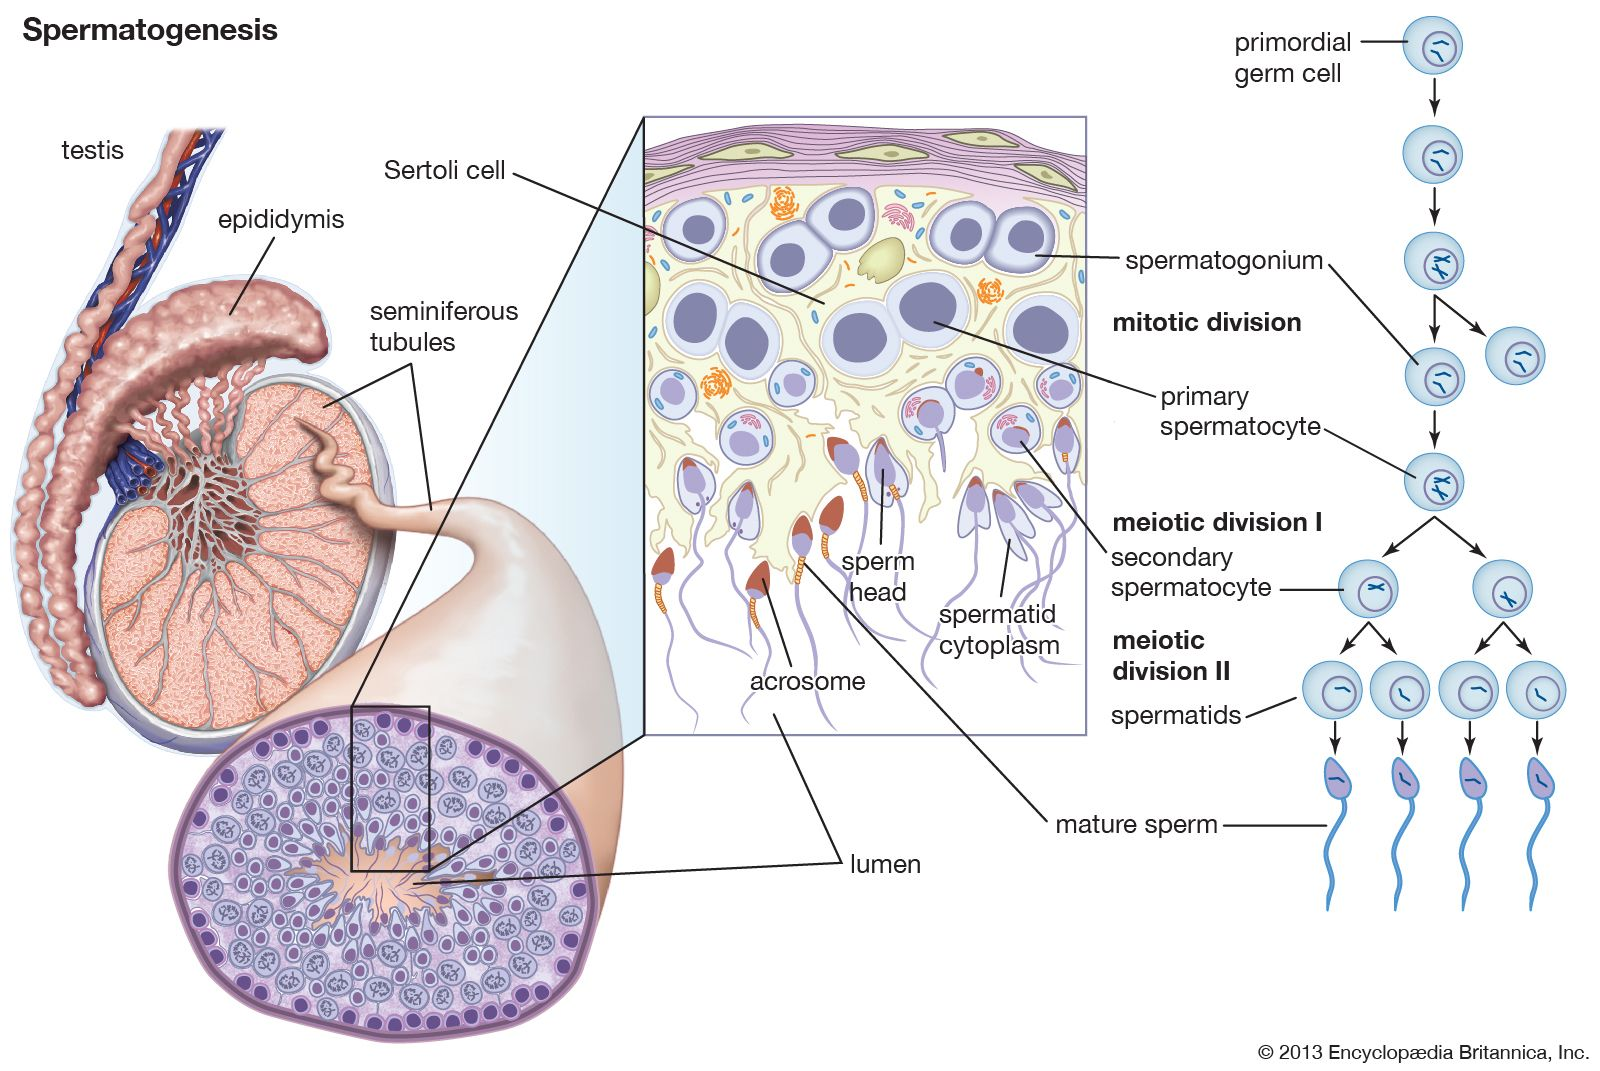 Mature sperm are stored in the epididymis